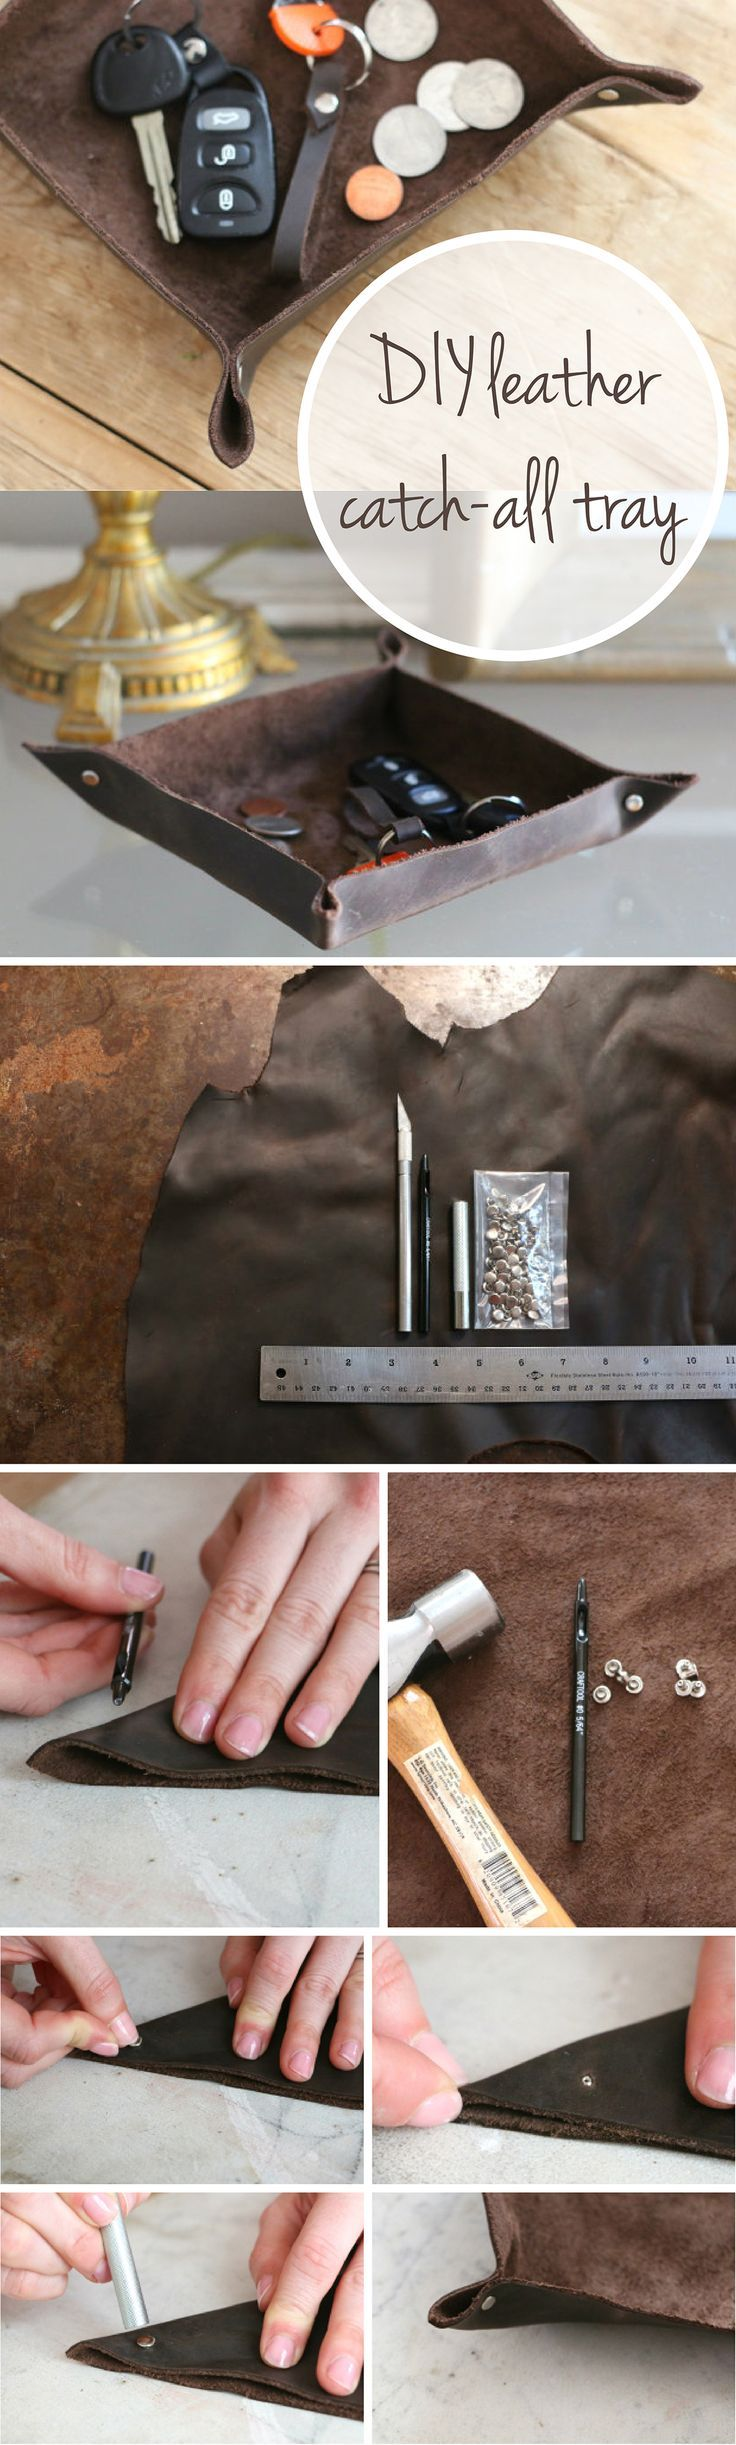 A great handmade gift for dad or a new homeowner! DIY leather catch-all tray for the entry way or bedside table. So clever and easy to make: www.ehow.com/...